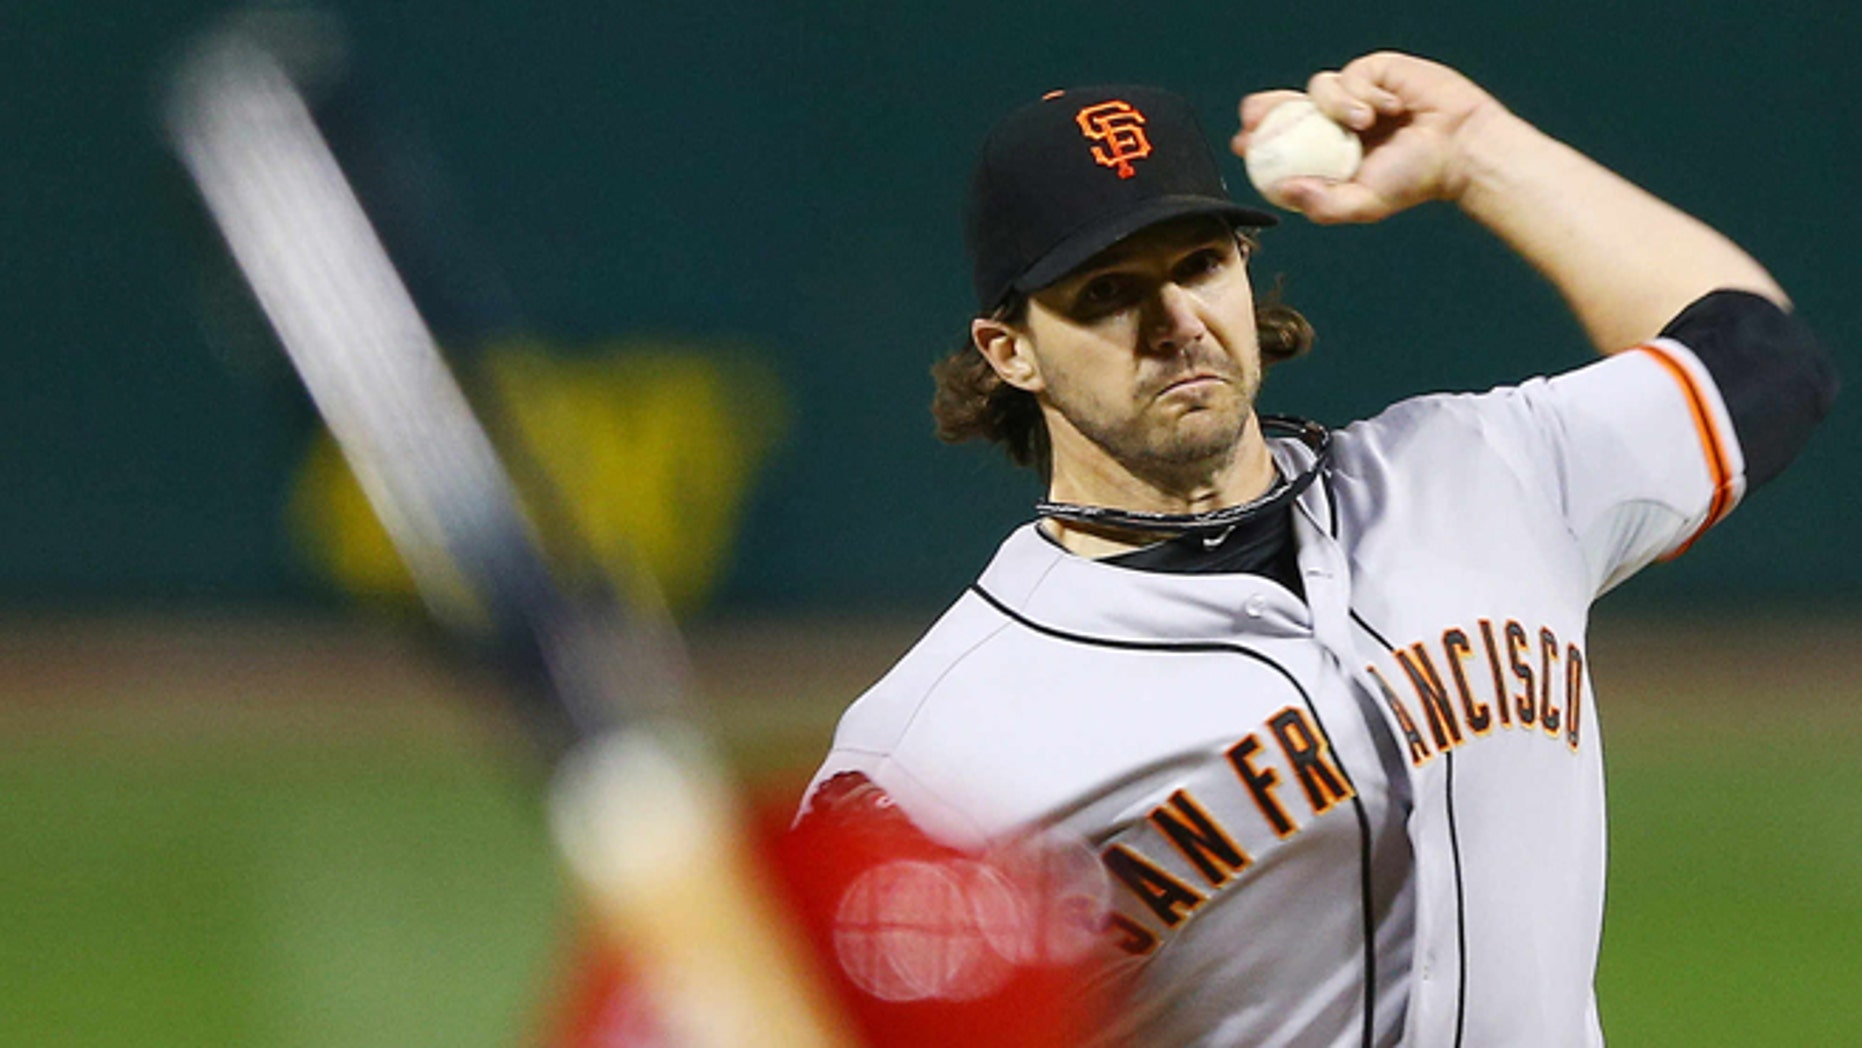 Oct. 20, 2012: San Francisco Giants starting pitcher Barry Zito throws during the first inning of Game 5 of baseball's National League championship series against the St. Louis Cardinals in St. Louis.